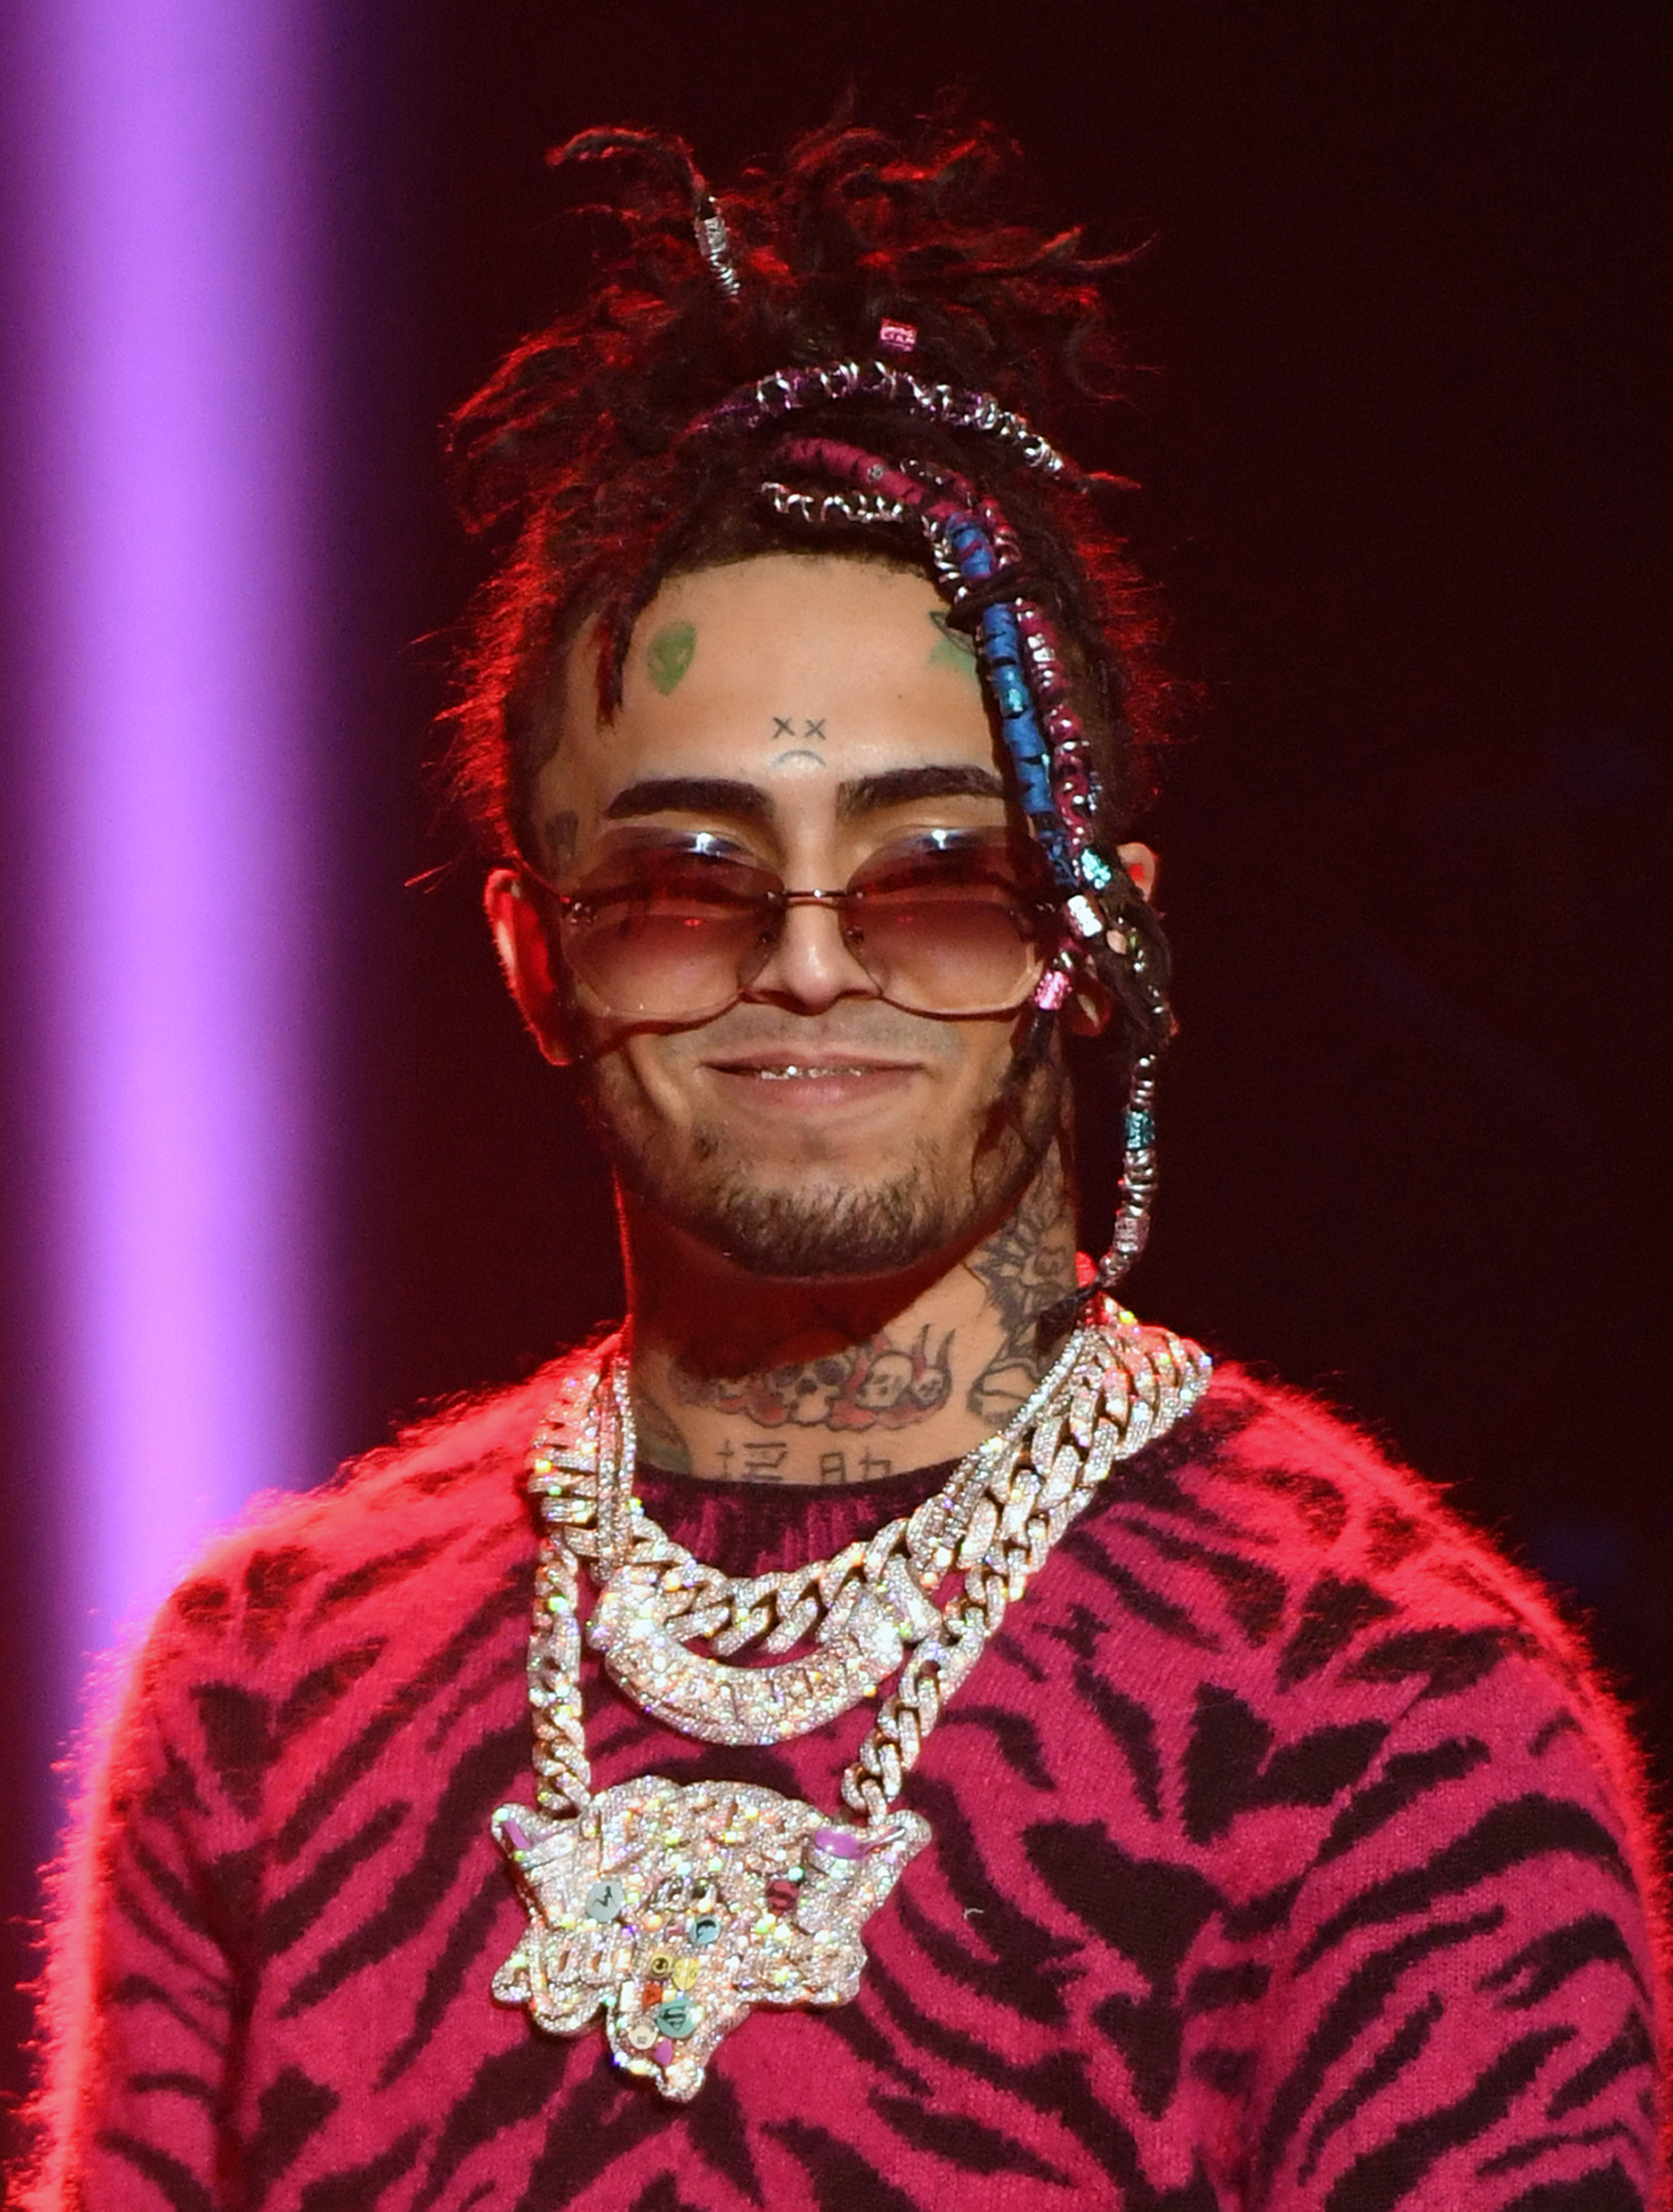 Lil Pump smiling while wearing several diamond chains